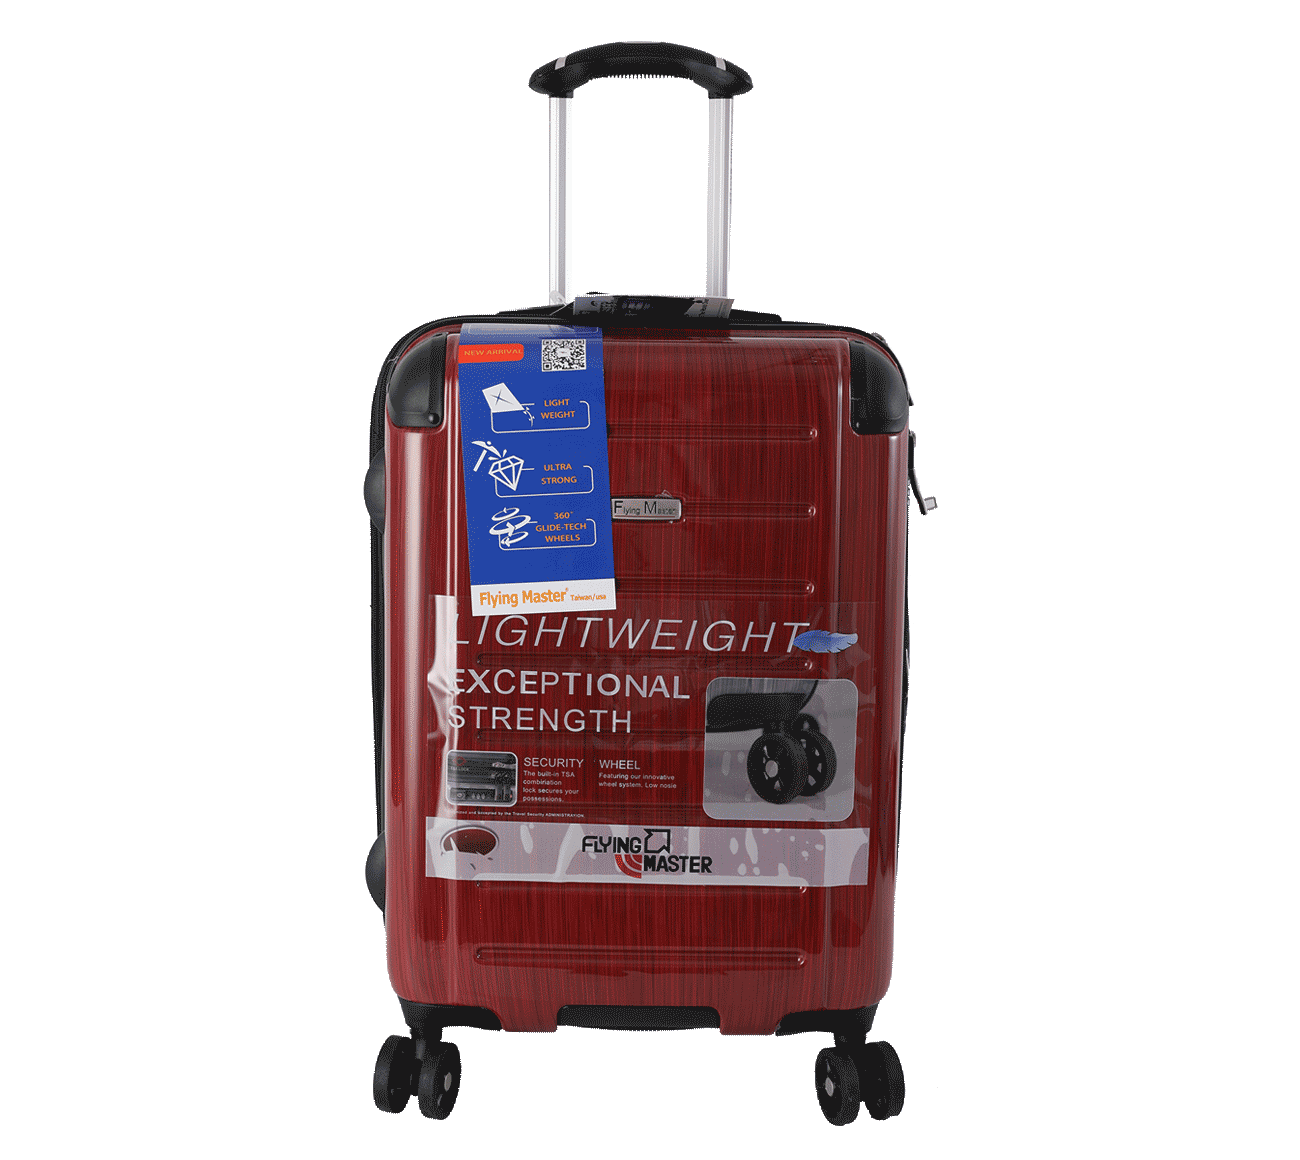 New luggage with universal spinners